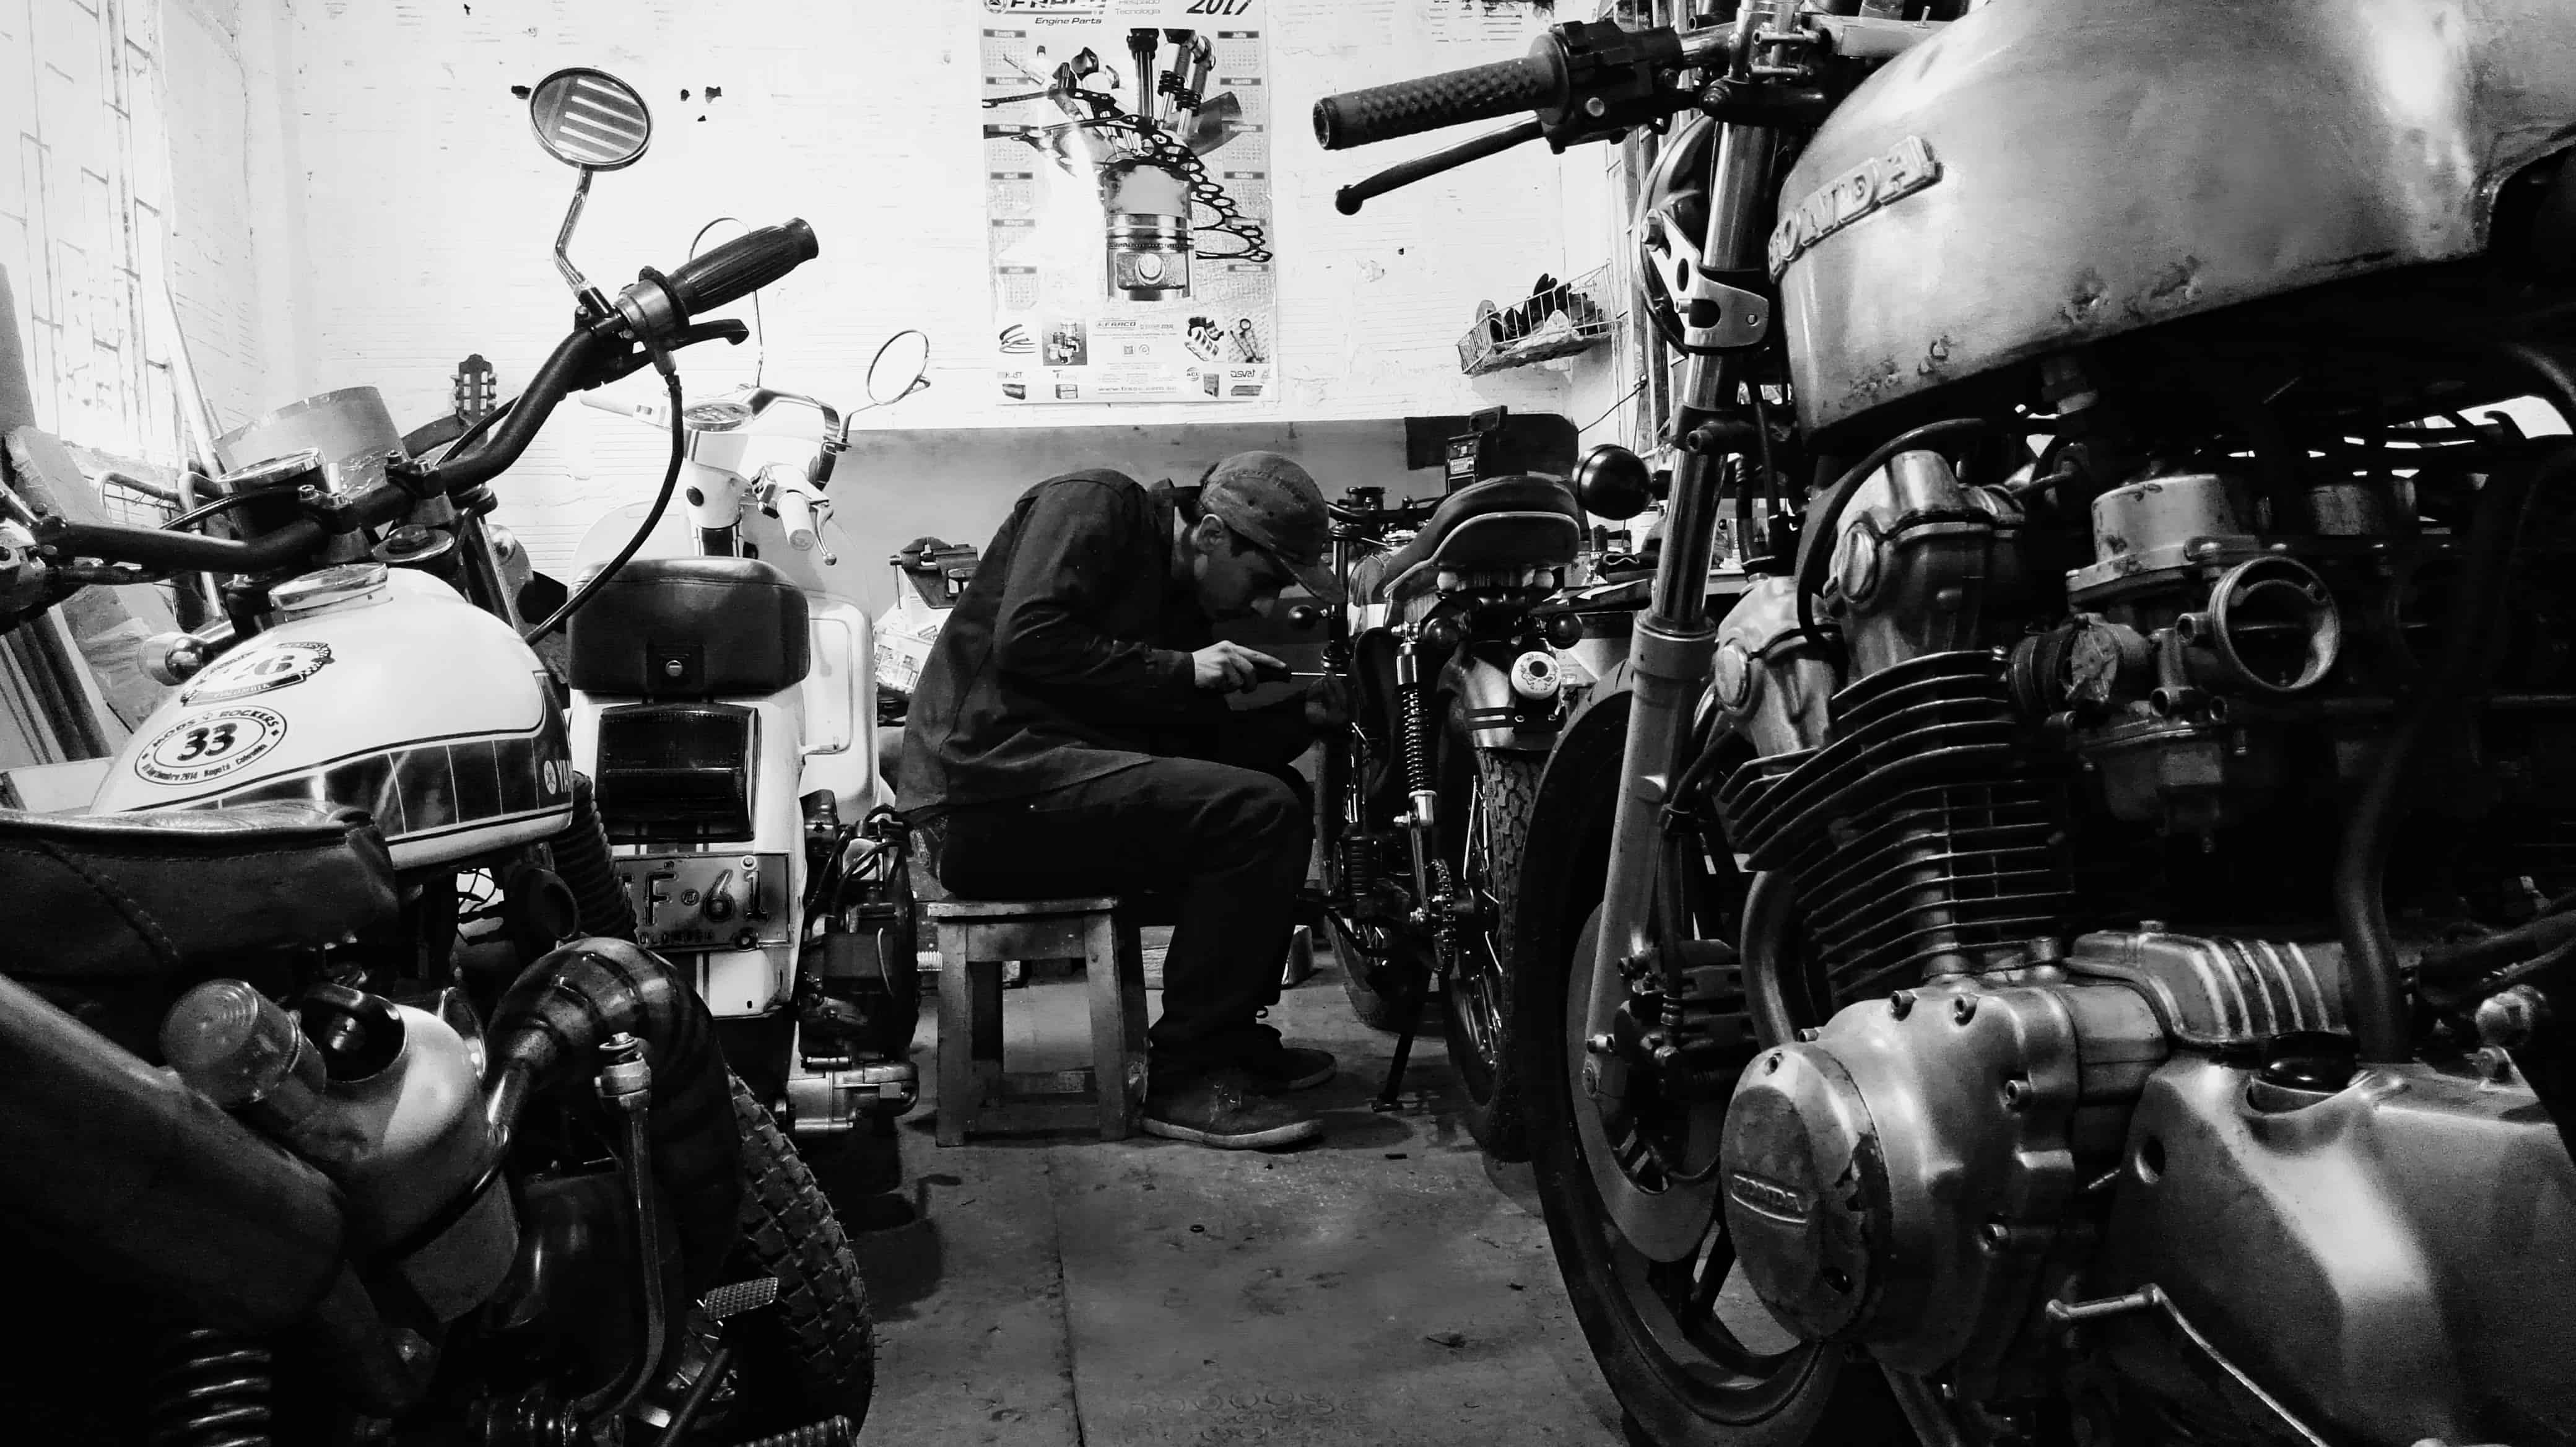 taller cultura cafe racer colombia